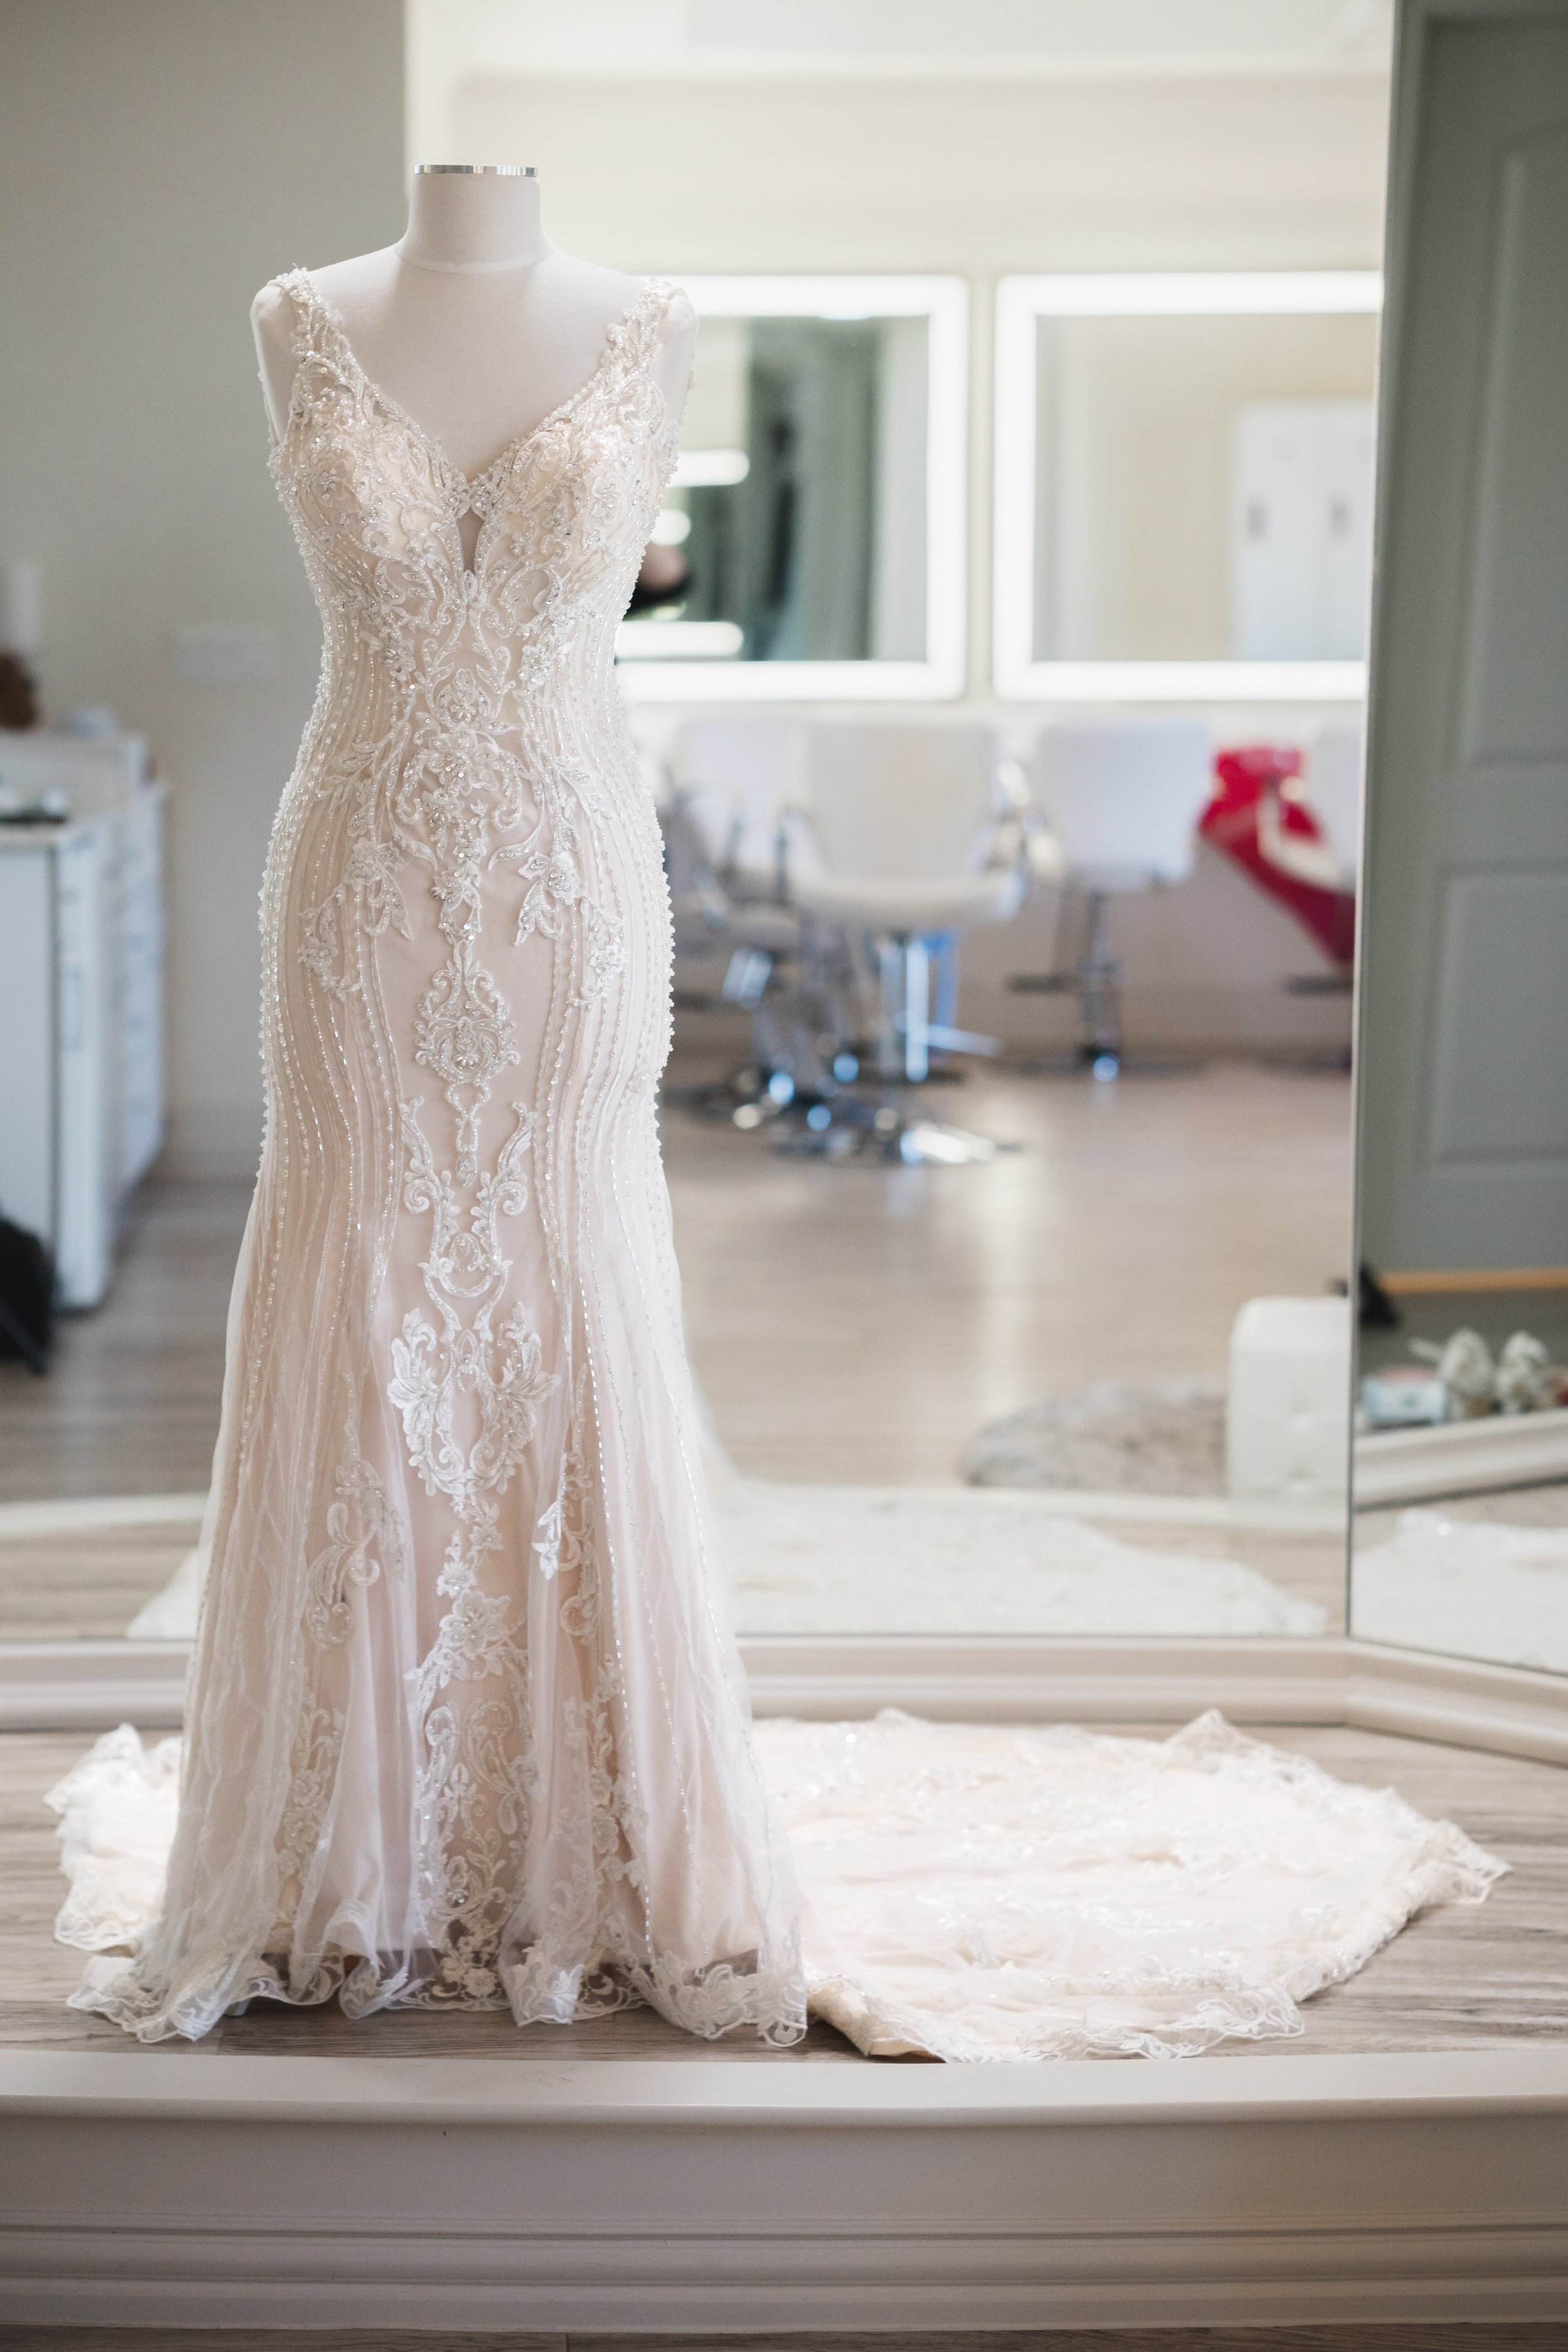 Sleek, modern, off-white wedding dress with embroidery.